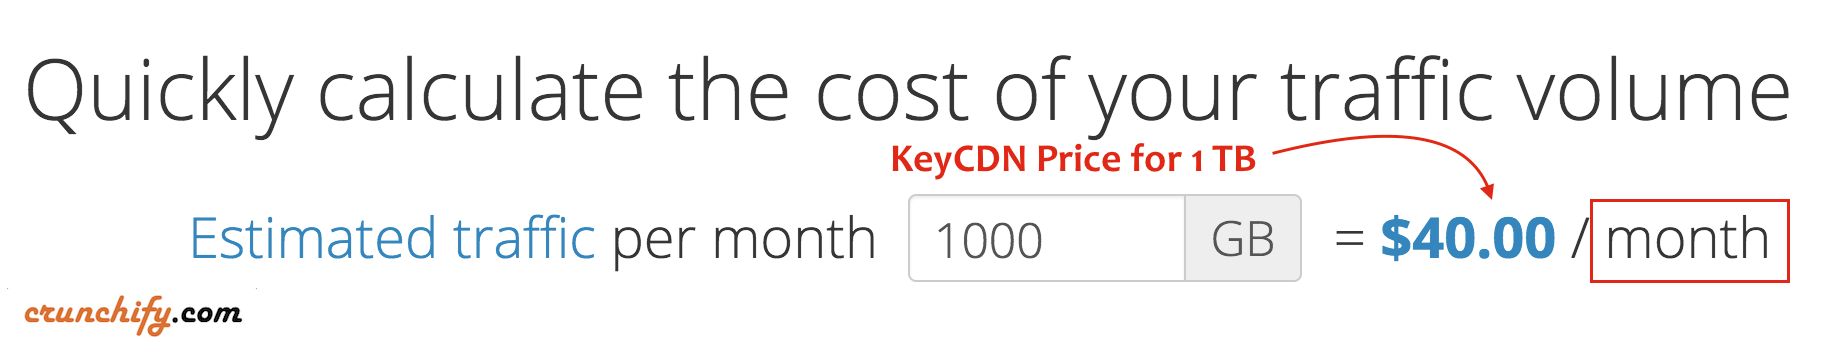 KeyCDN price for 1TB per Month - Crunchify Review